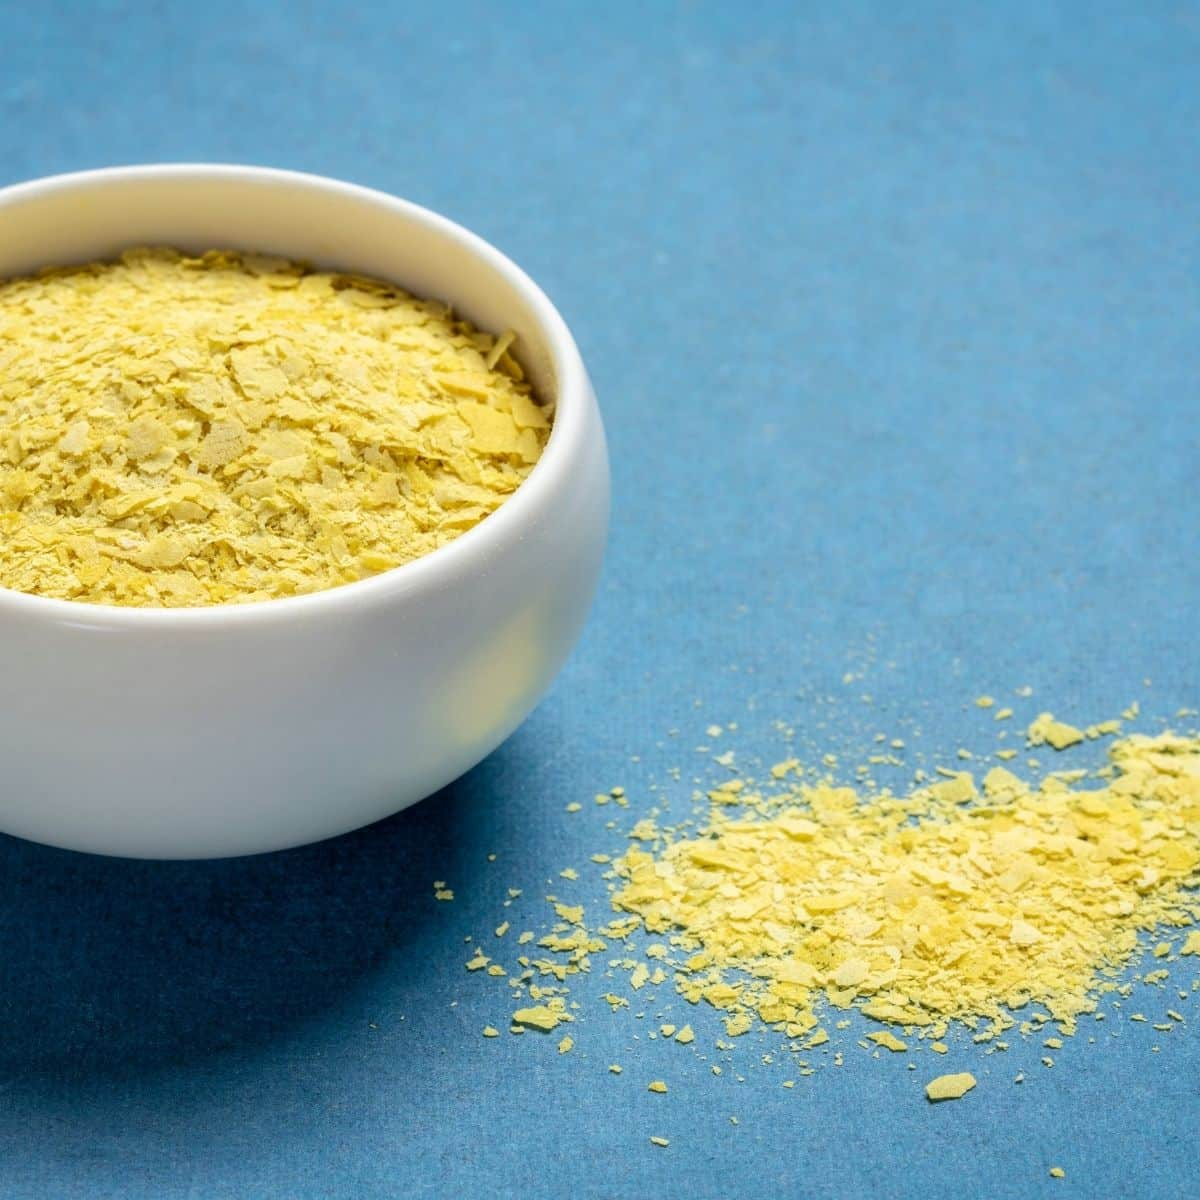 Nutritional yeast in a bowl with some spilt next to it